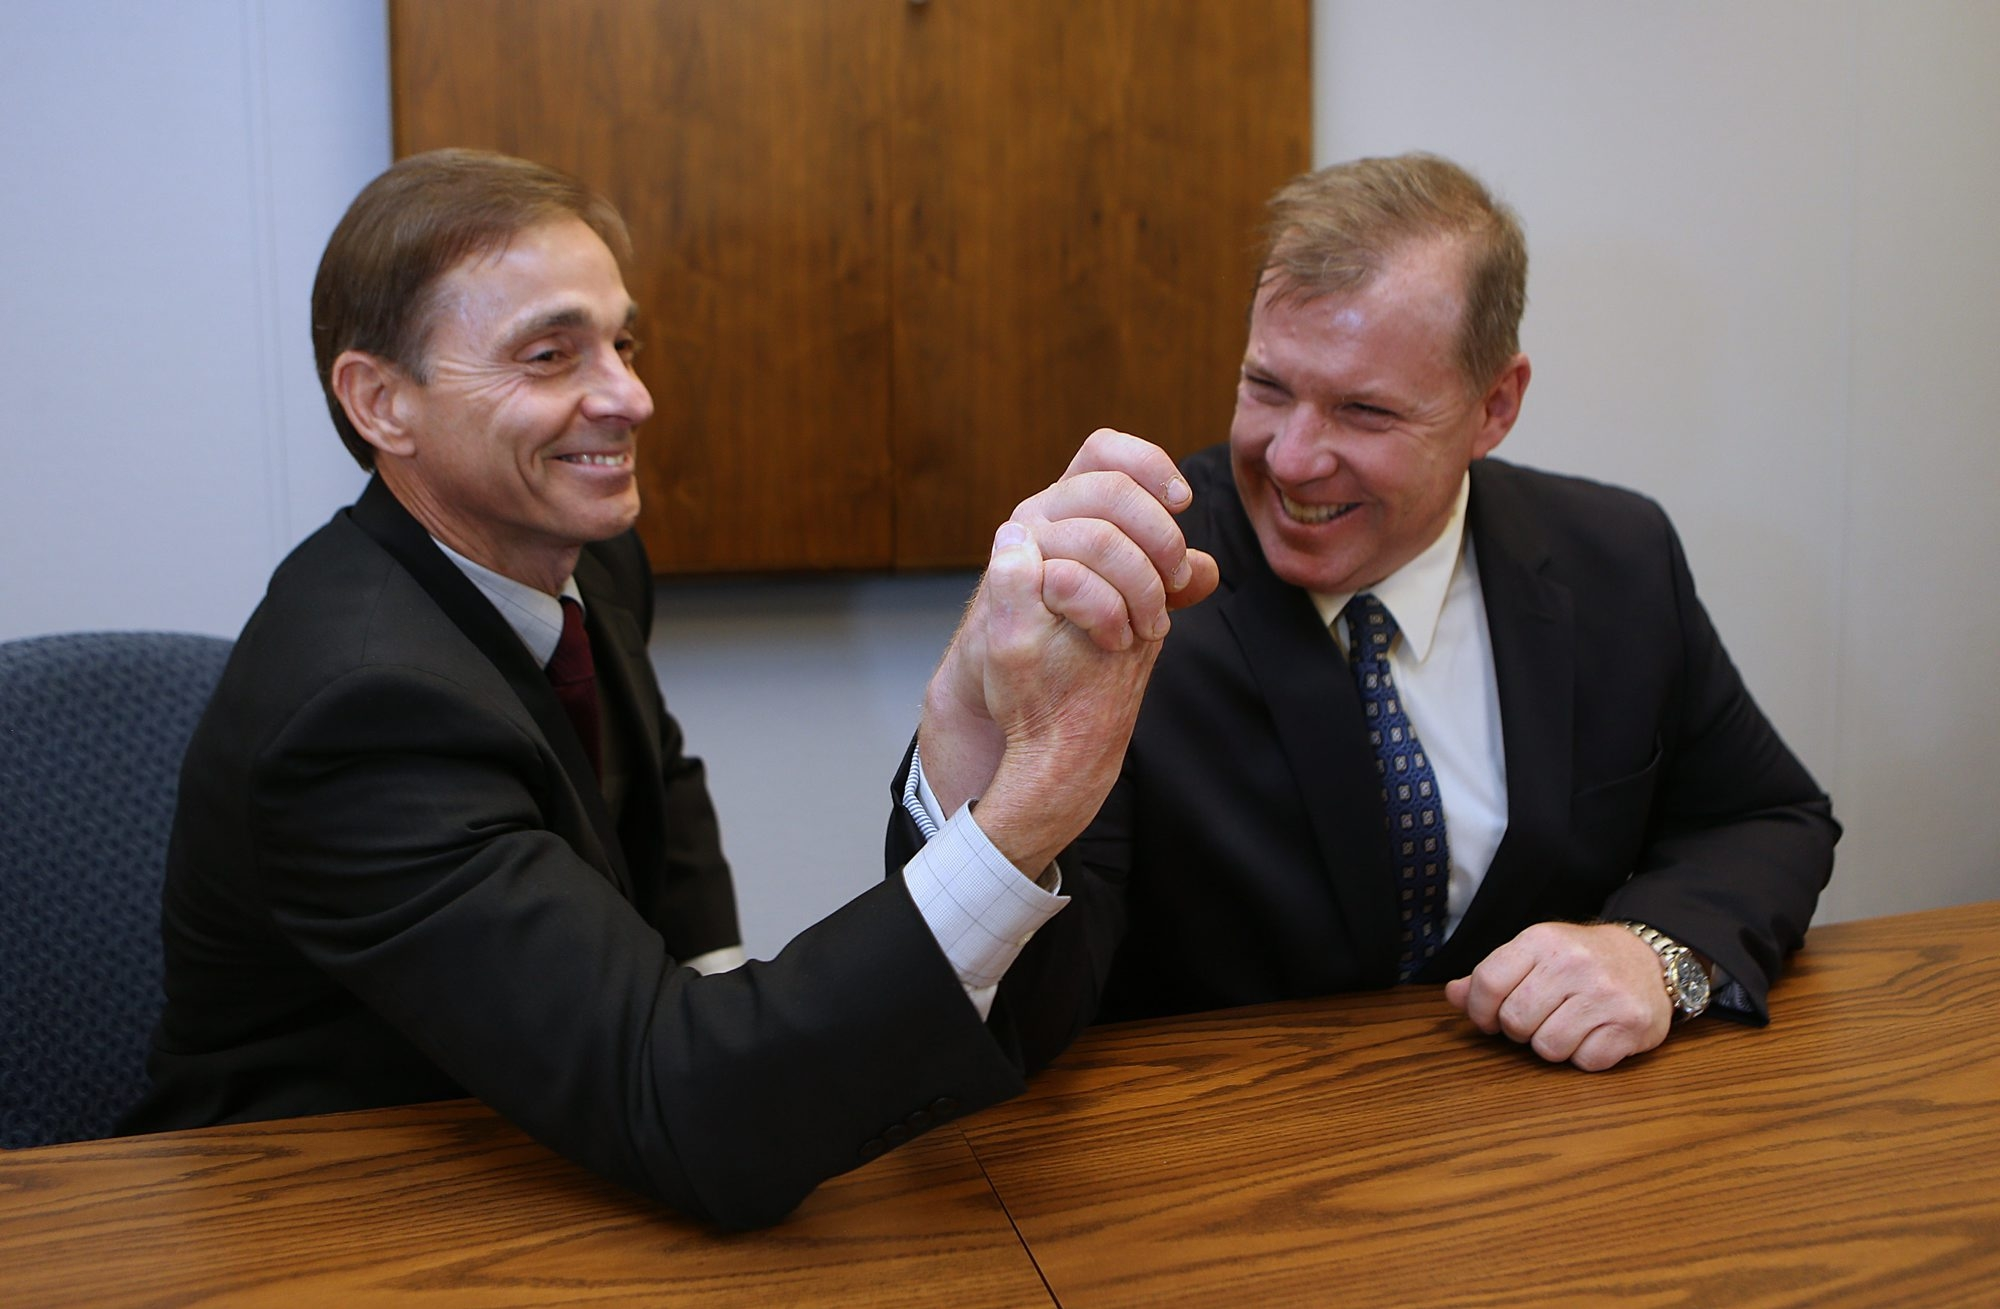 Roger J. Klatt, left, superintendent of Barker and Royalton-Hartland schools, and Michael S. Wendt, superintendent of Wilson and Newfane schools,  meet and compete in a conference room at the Barker Central administrative offices.